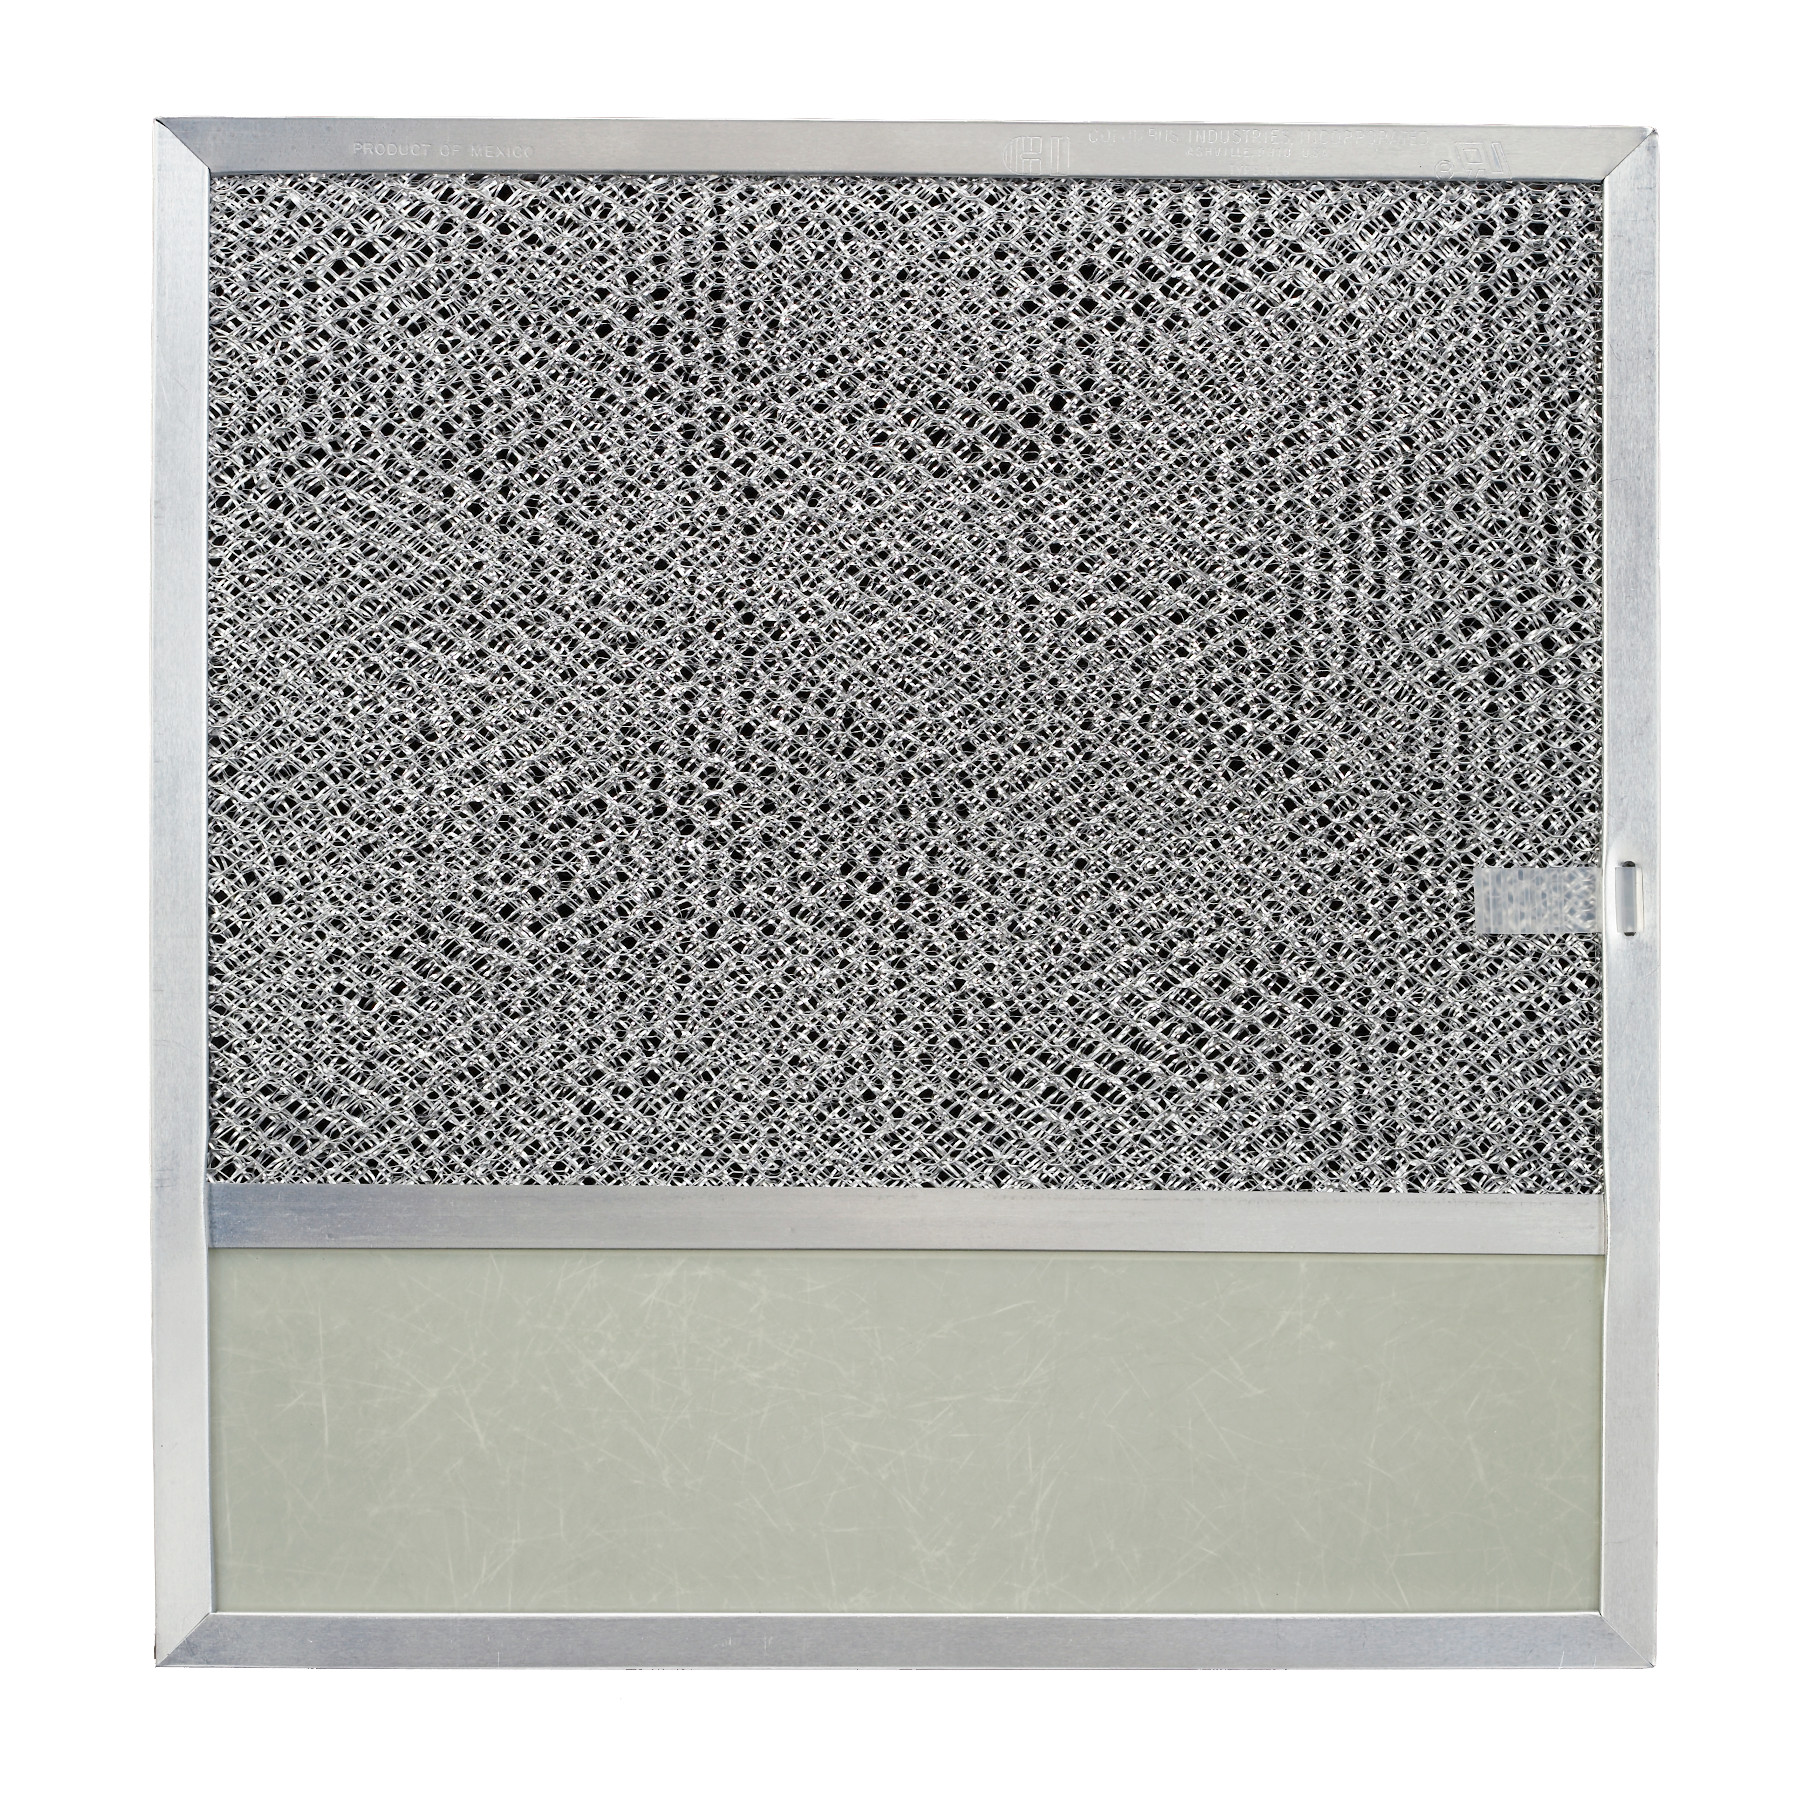 Aluminum Filter with Light Lens, 11-3/8-Inch x 11-3/4-Inch